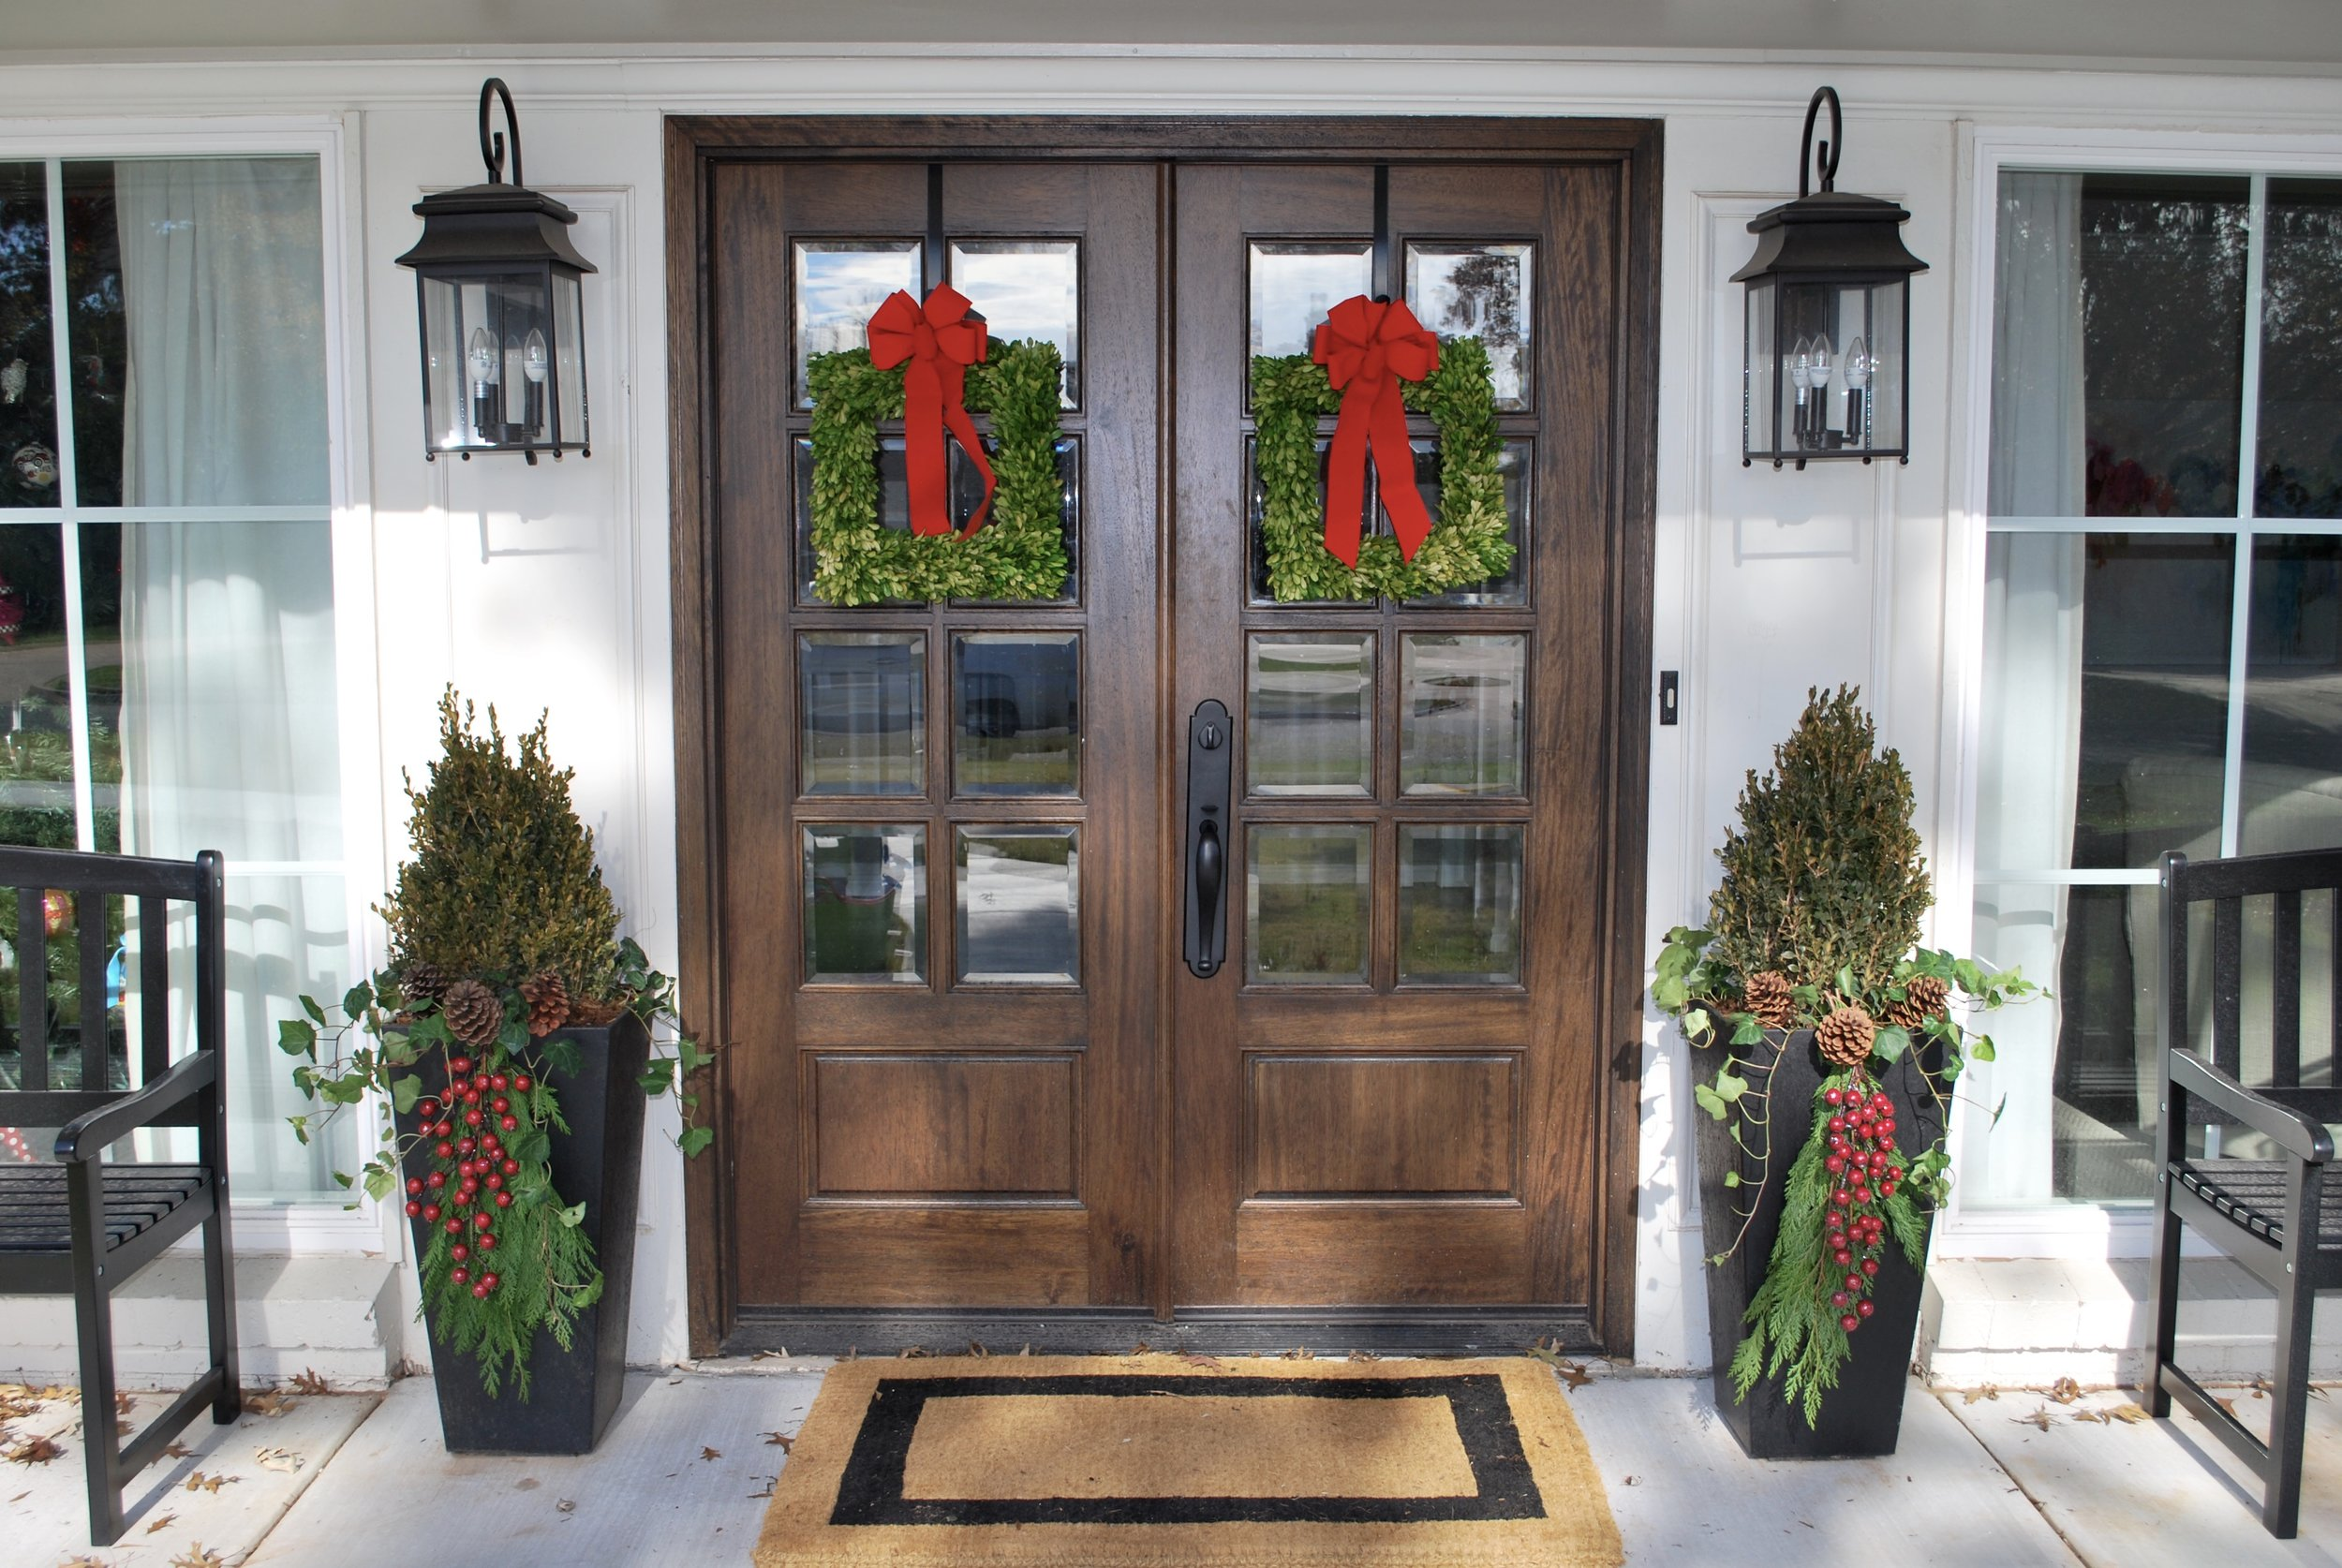 Holiday Planter Bling   These last few weeks the Adorn elves have been busy spreading holiday cheer to front porches and store fronts all over KC and OKC. We are in the holiday spirit and wanted to share some of our favorite decorating ideas with you to get your outdoor planters ready for the season.  In the picture above we started with a boxwood in each planter and then added festive holiday décor to create our finished look. Our go-to holiday décor for pots is red berries, pine cones and fresh greenery…it's looking pretty festive right? Round gold and silver ornaments in various sizes and textures are also a fun addition to planters if you want a more elegant look. If you have a wreath or other door decoration you can use coordinating decor as filler in your pots to tie it all together for a cohesive holiday look.  We love fresh evergreen garland! It smells SO good and is SO lush! One of our favorite things is to encircle the top of a planter with it. Word of warning though if using fresh greenery, the downside is that it dries out over time. We recommend spraying the greens with an anti-desiccant product like Wilt-Pruf so the needles will stay on longer and spraying the greenery with water 3 times a week so it stays fresh. It's so beautiful and festive, it's worth the extra effort to keep it pretty, trust us!